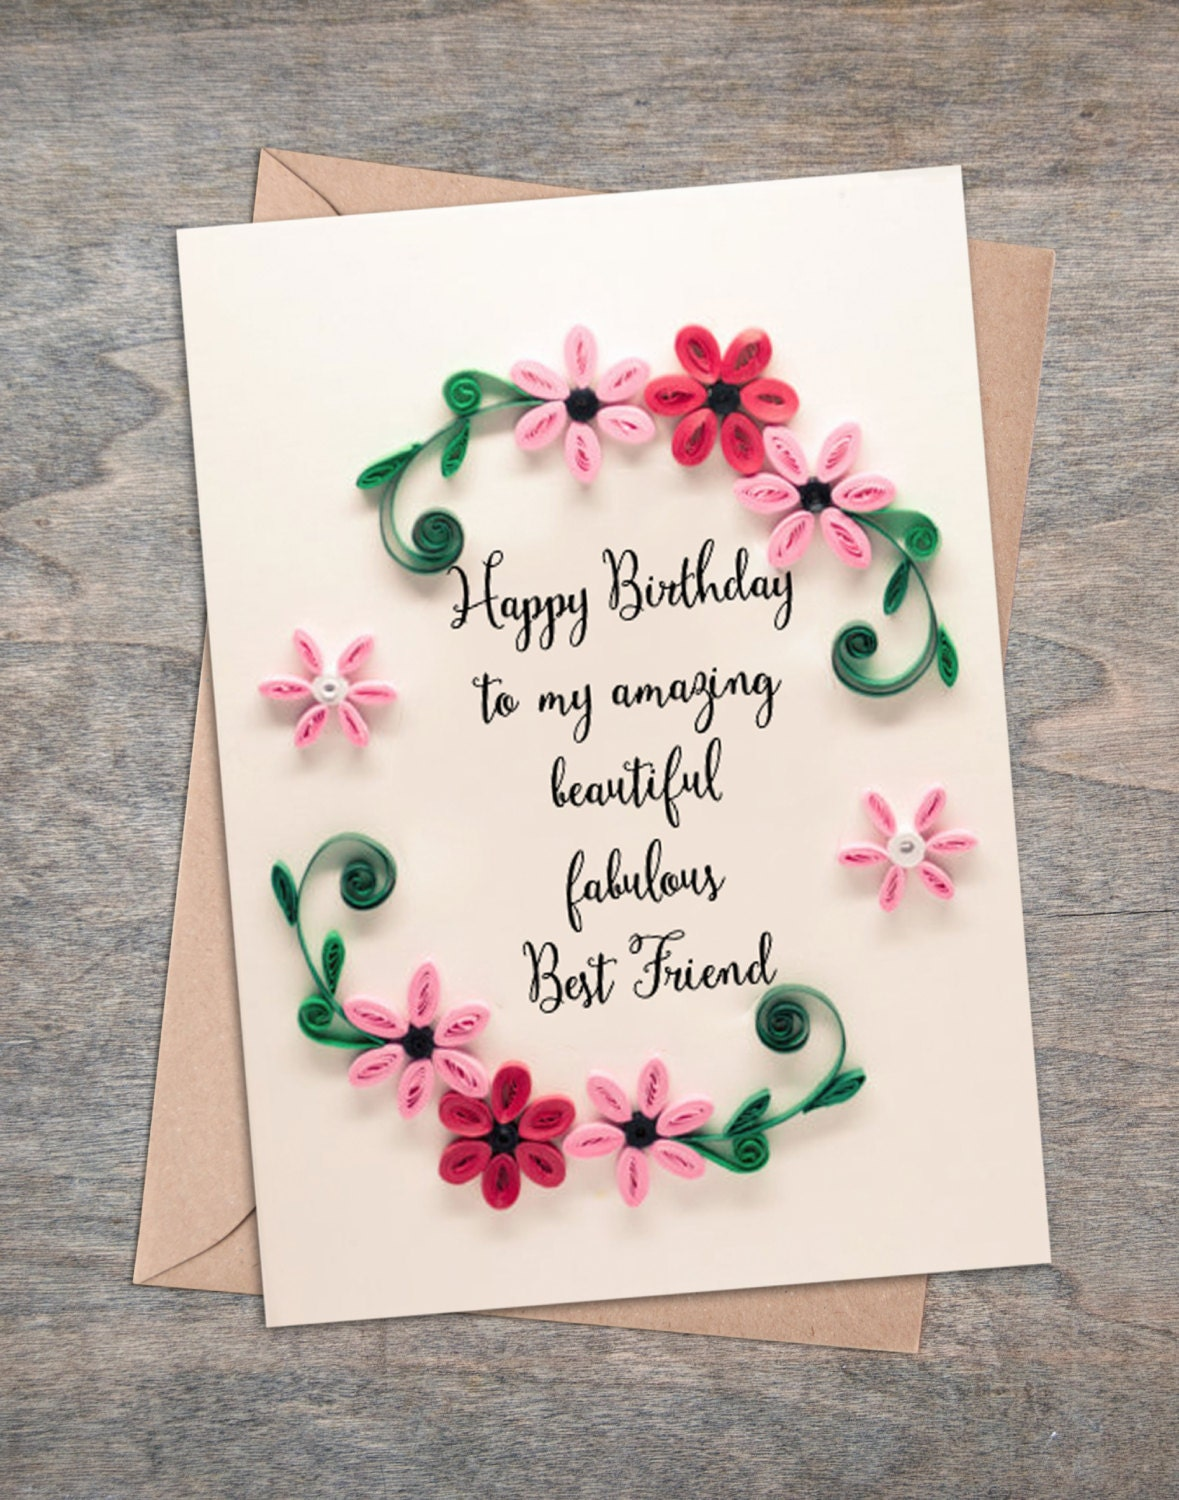 Best Friend Birthday Card Girlfriend Birthday Card Happy – Birthday Cards for Friends